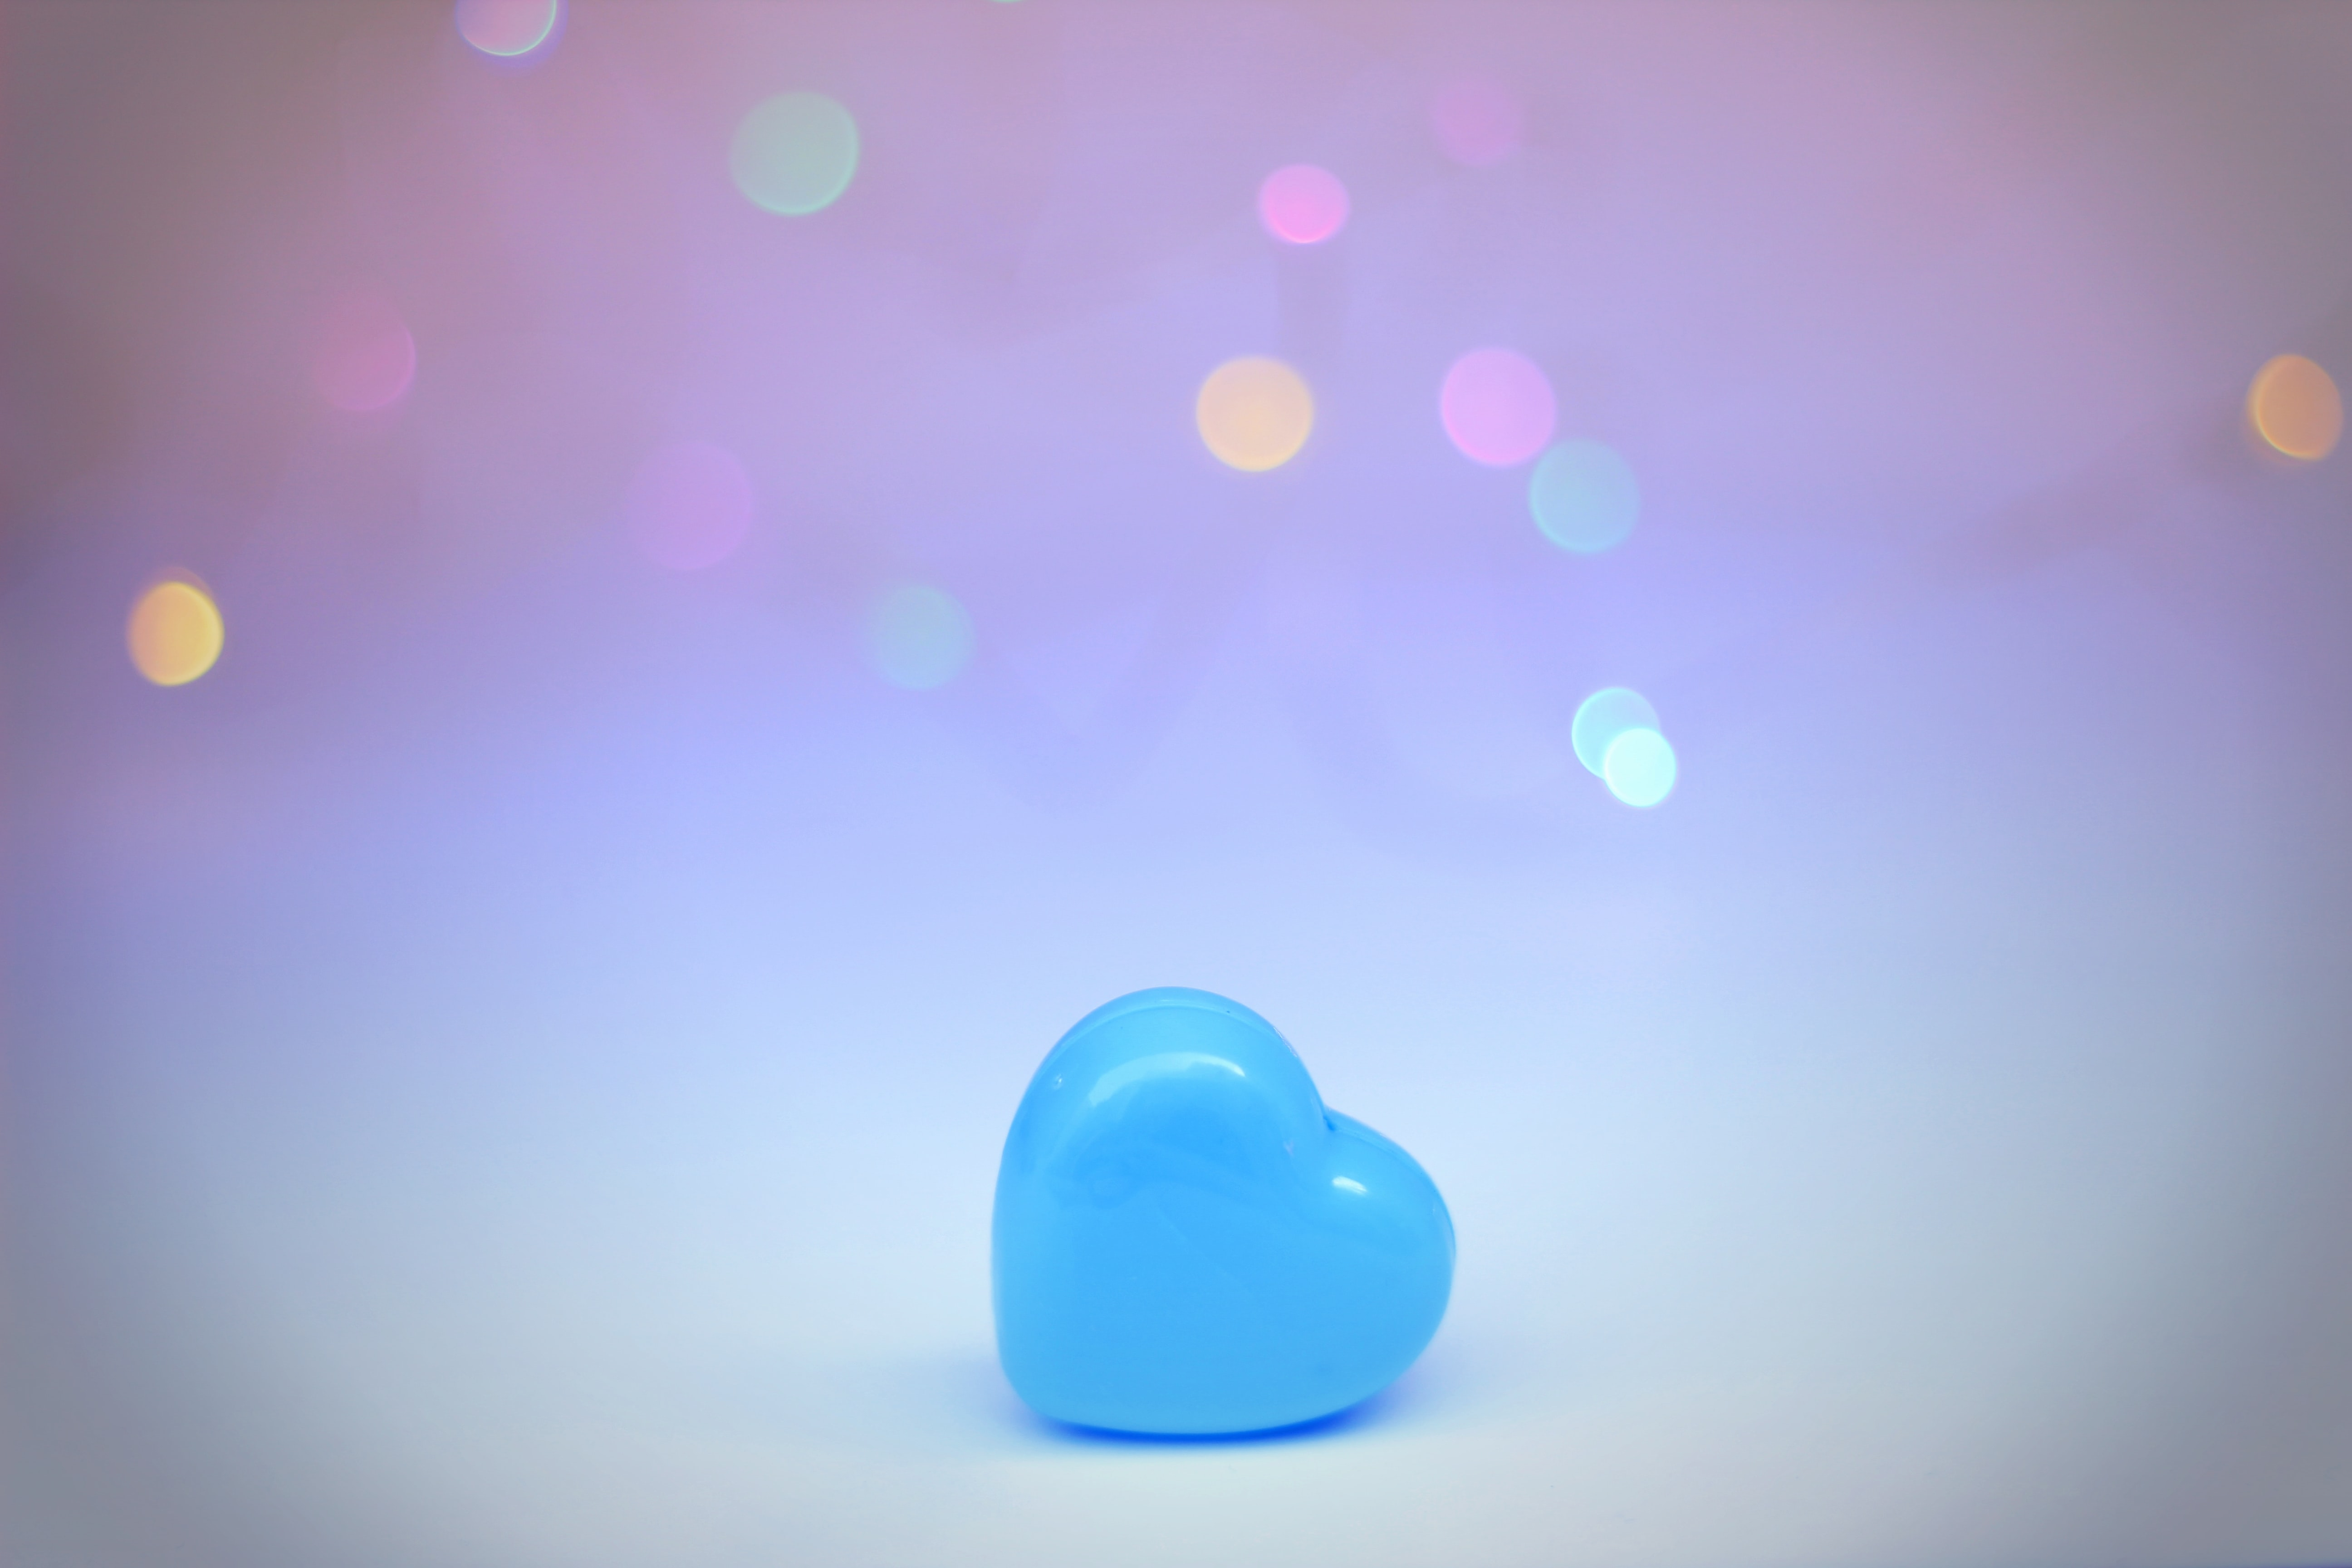 Download free Heart HD pictures